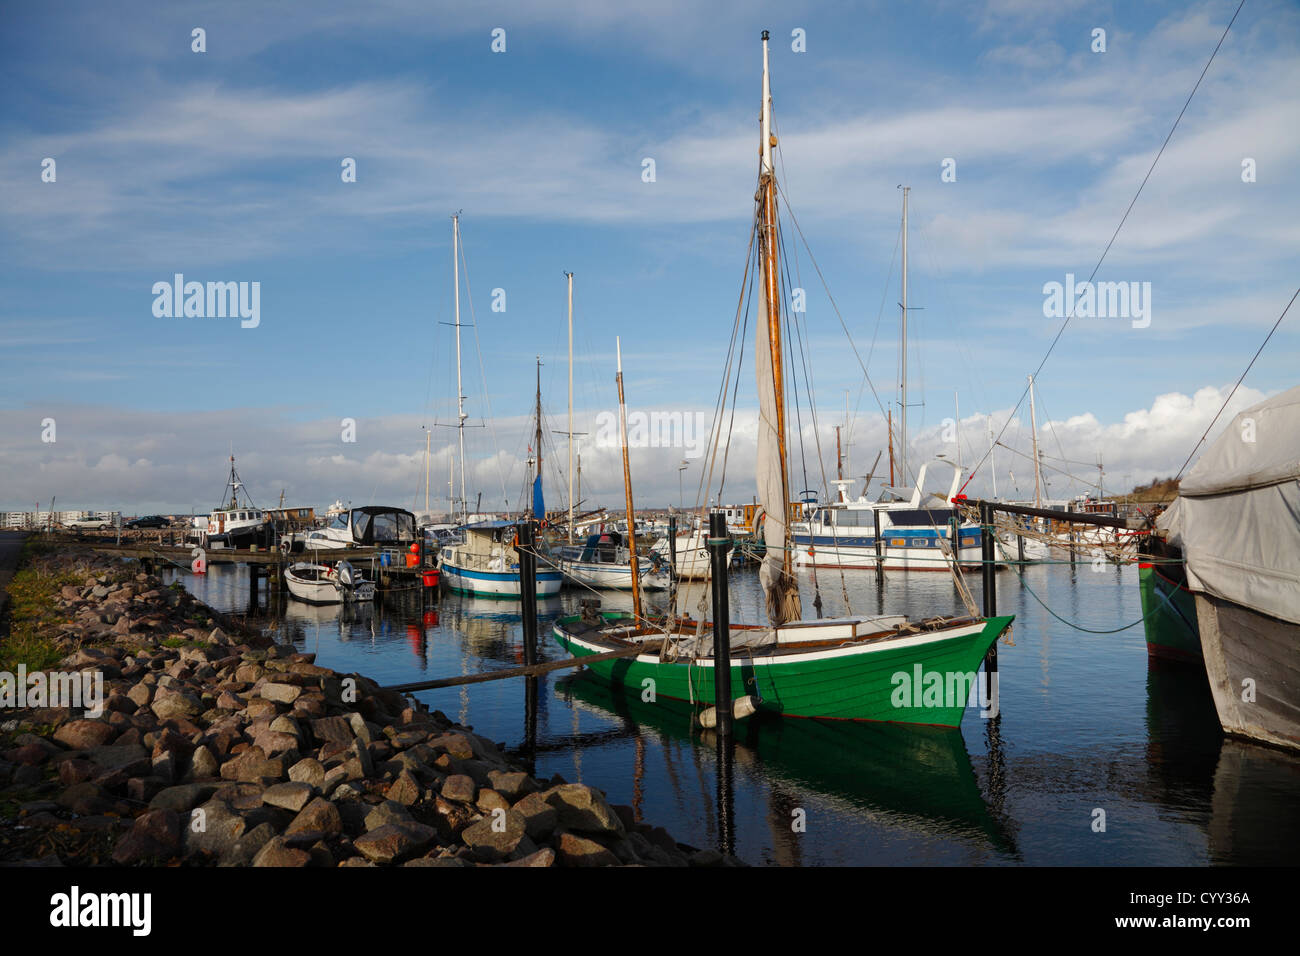 Sailing, motor and fishing boats in Skudehavnen - the old fishing harbour -  the northernmost part of the port of - Stock Image